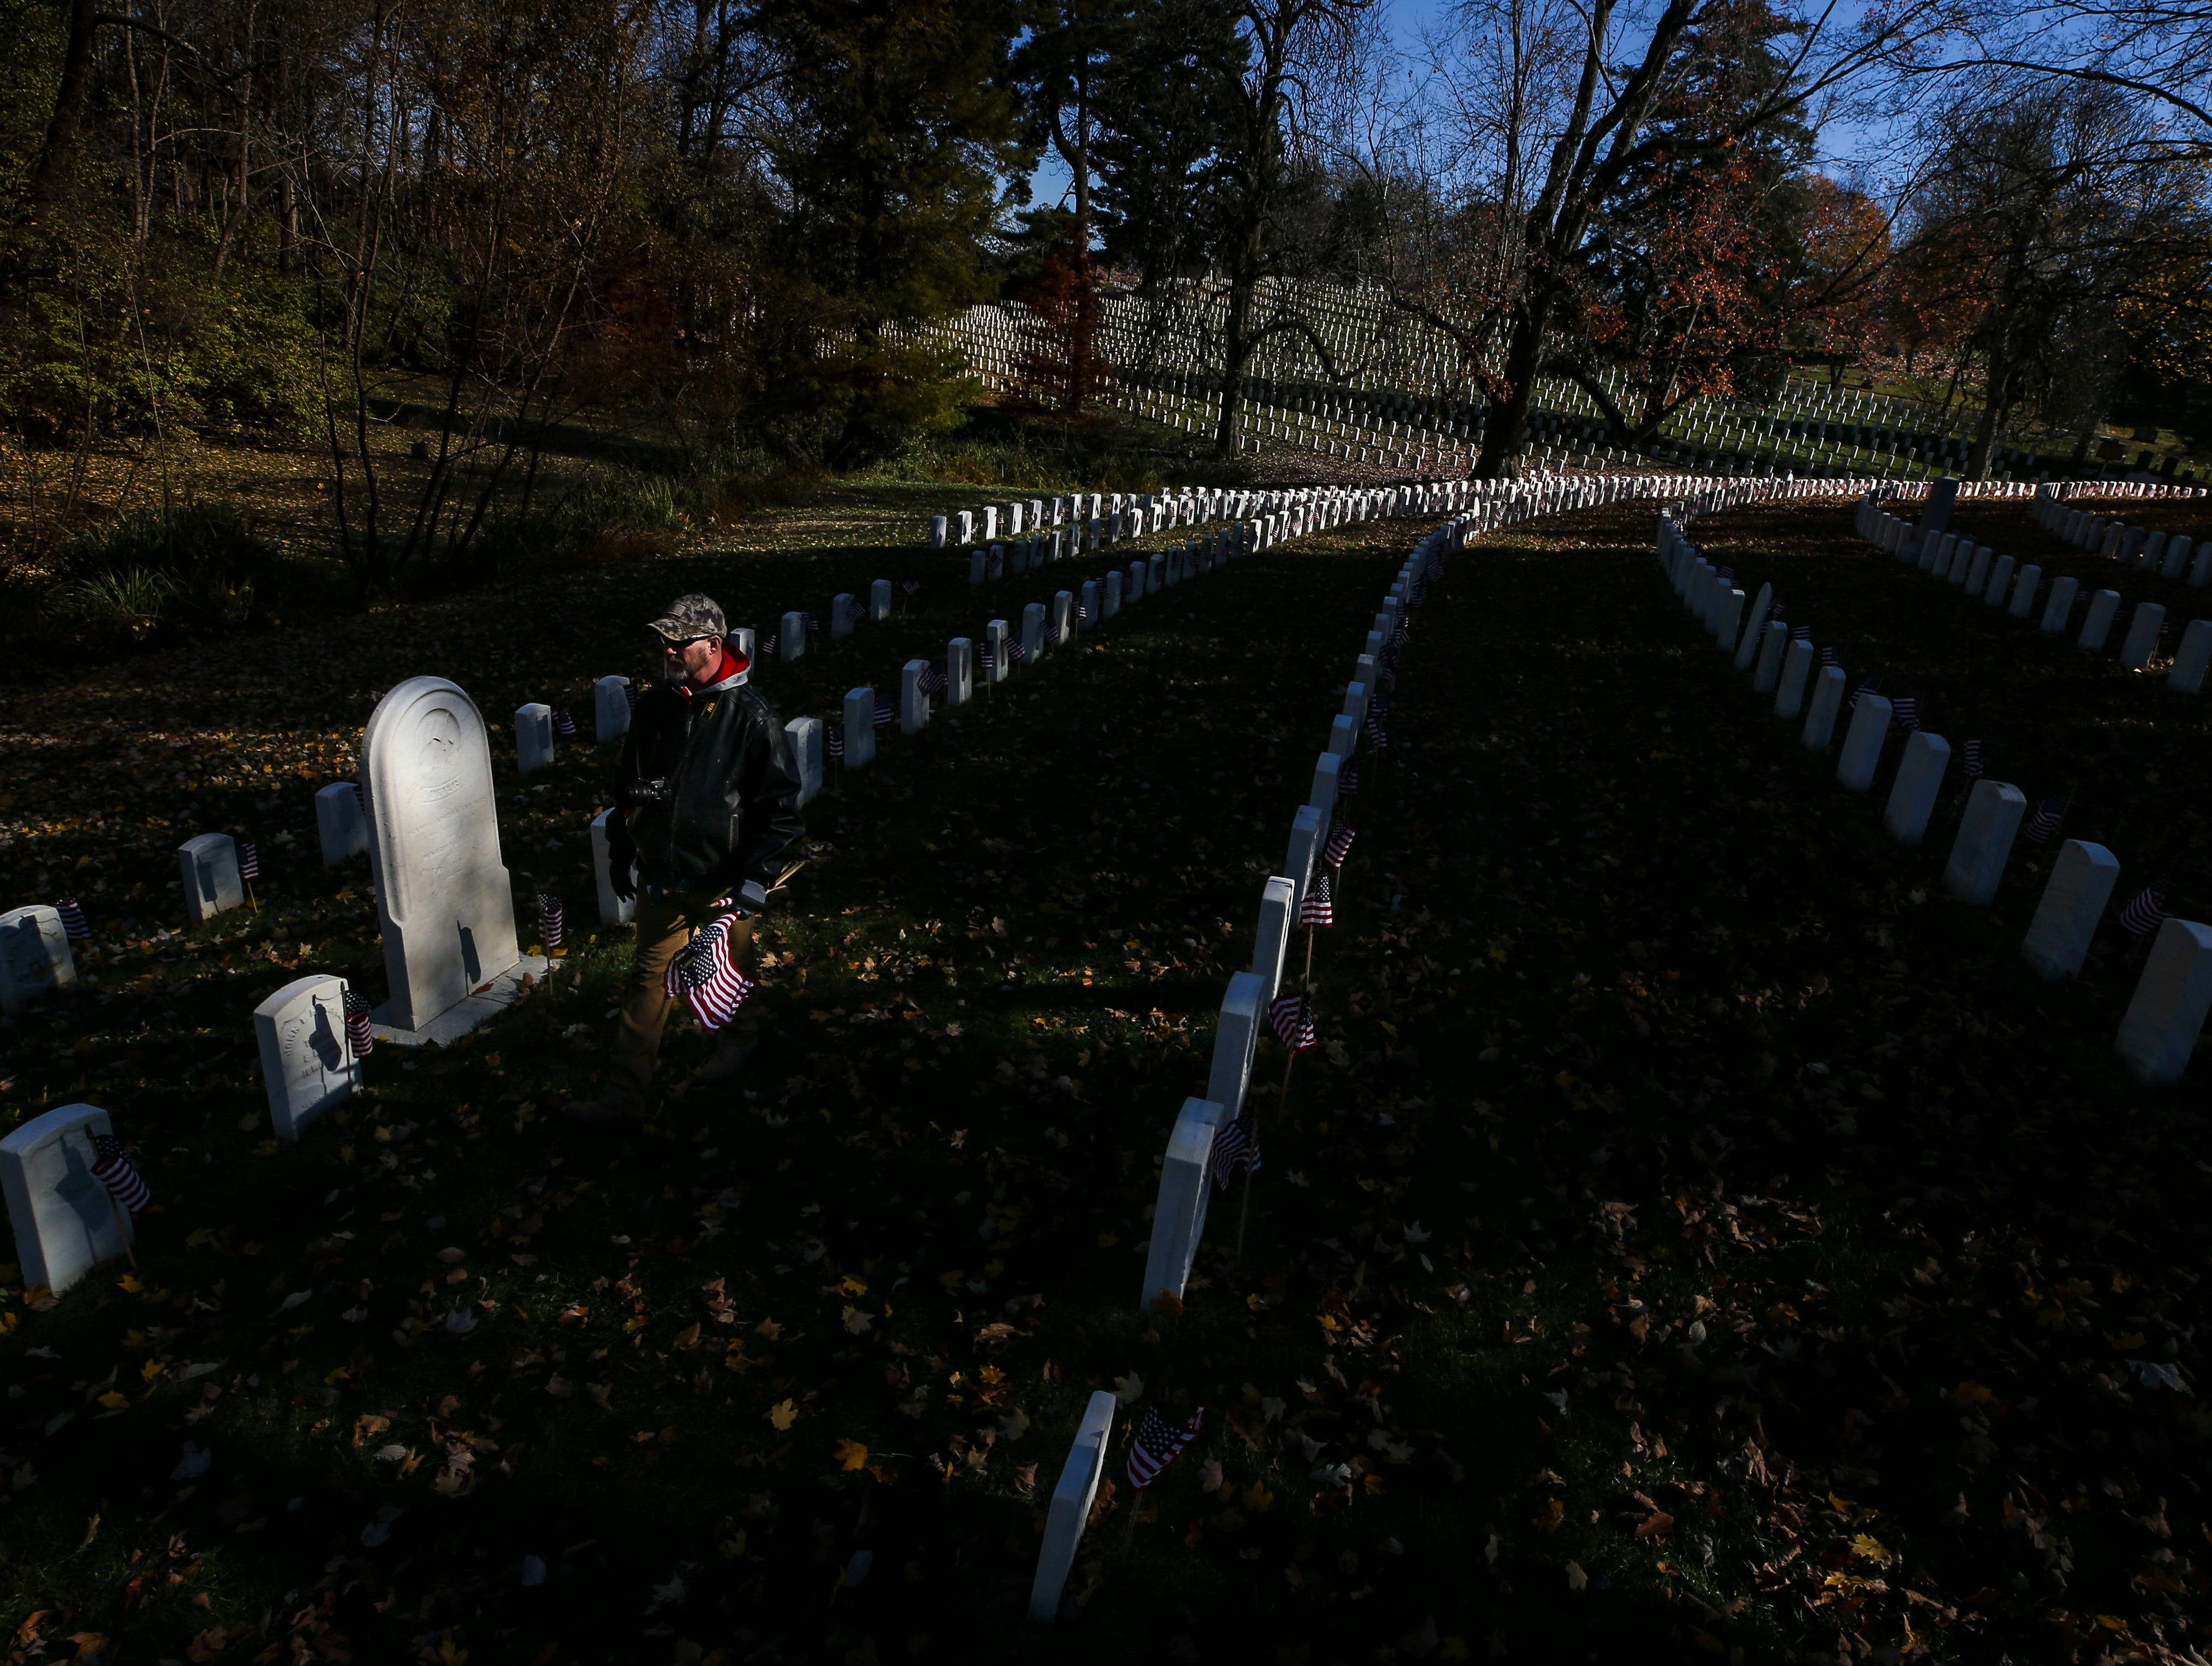 Tom Ashe, an Army veteran of seven years, walks through Cave Hill Cemetery after a Flags 4 Vets event Saturday, Nov. 10, 2018. Veterans Day is Sunday, Nov. 11. He said he comes every year and brings his two sons and wife to honor those who served.